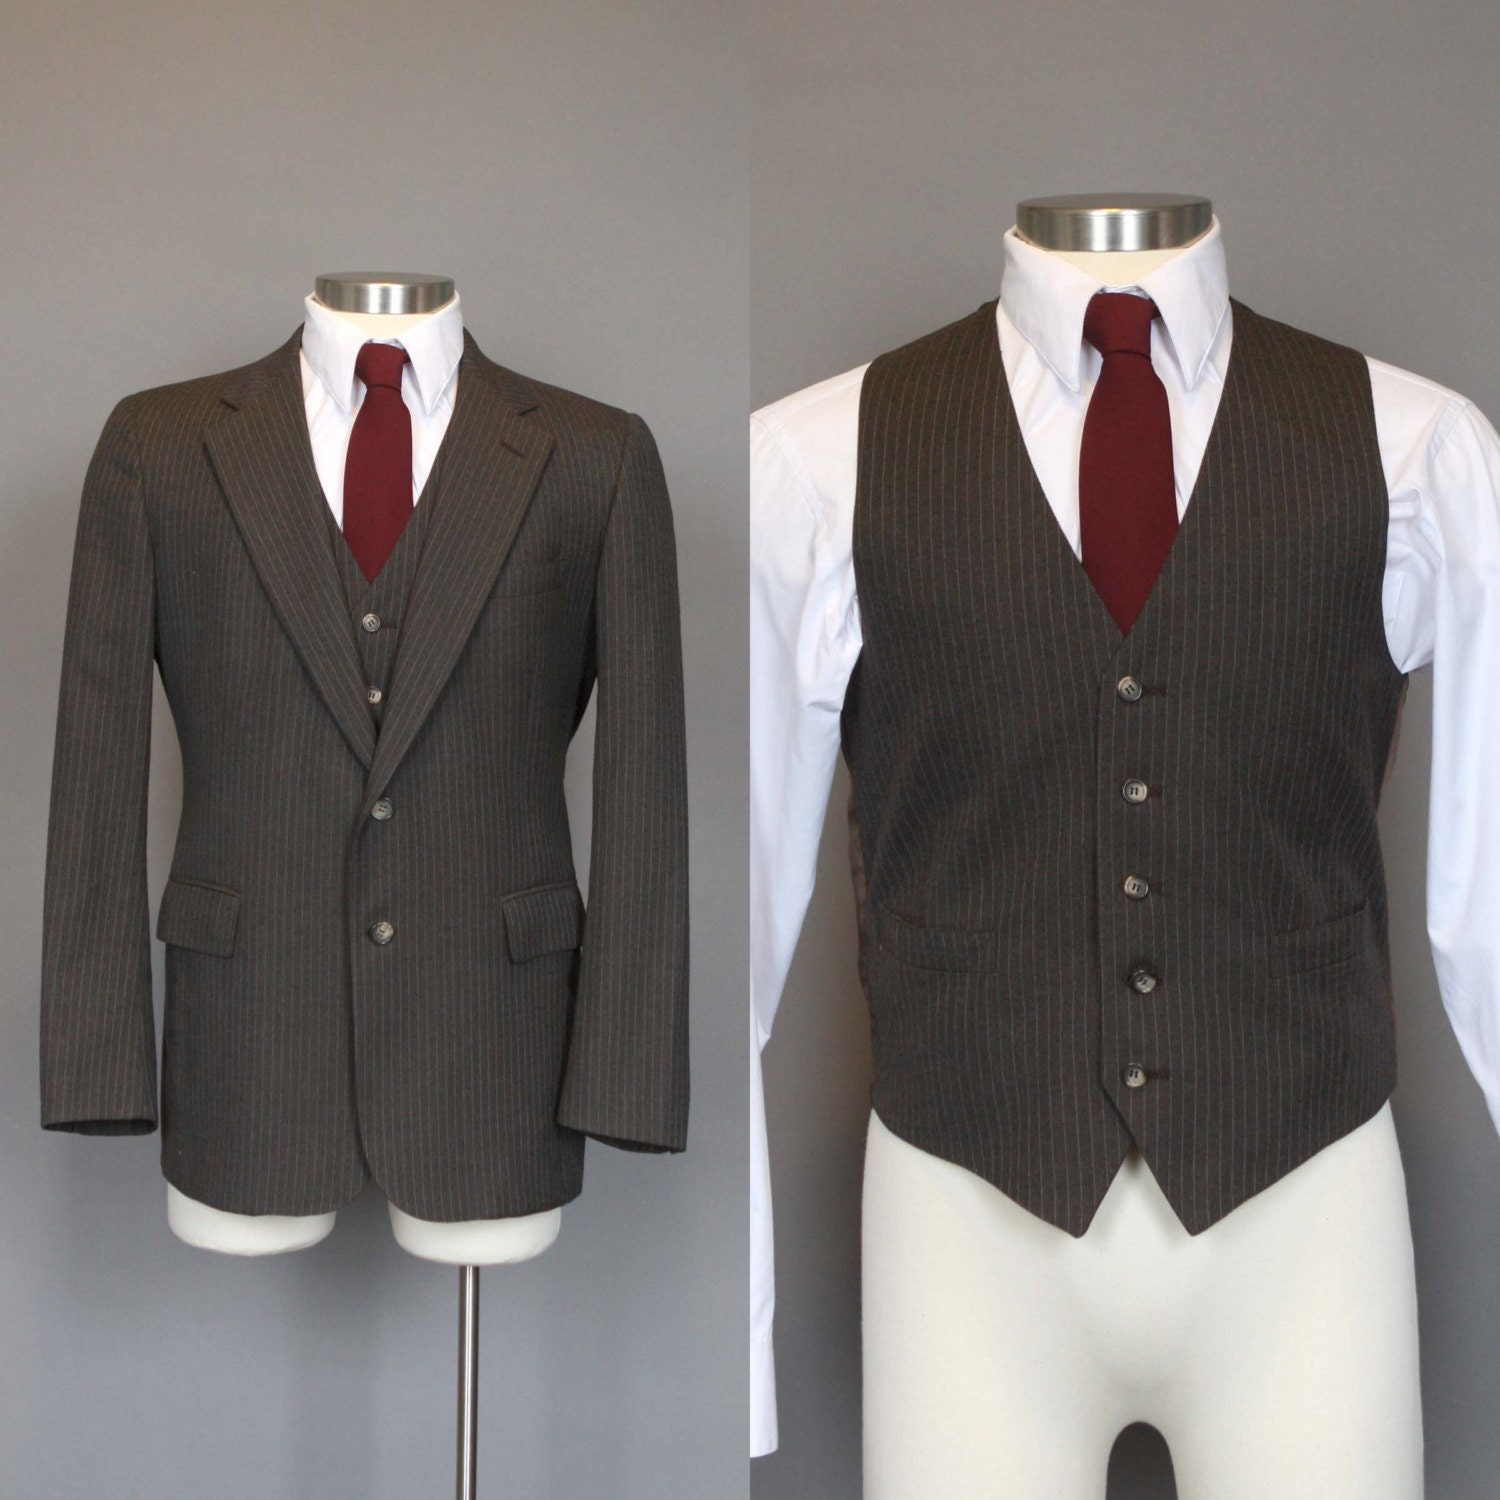 Vintage Jacket Vest Mens Fitted Sport Coat and Vest 70s 1970s